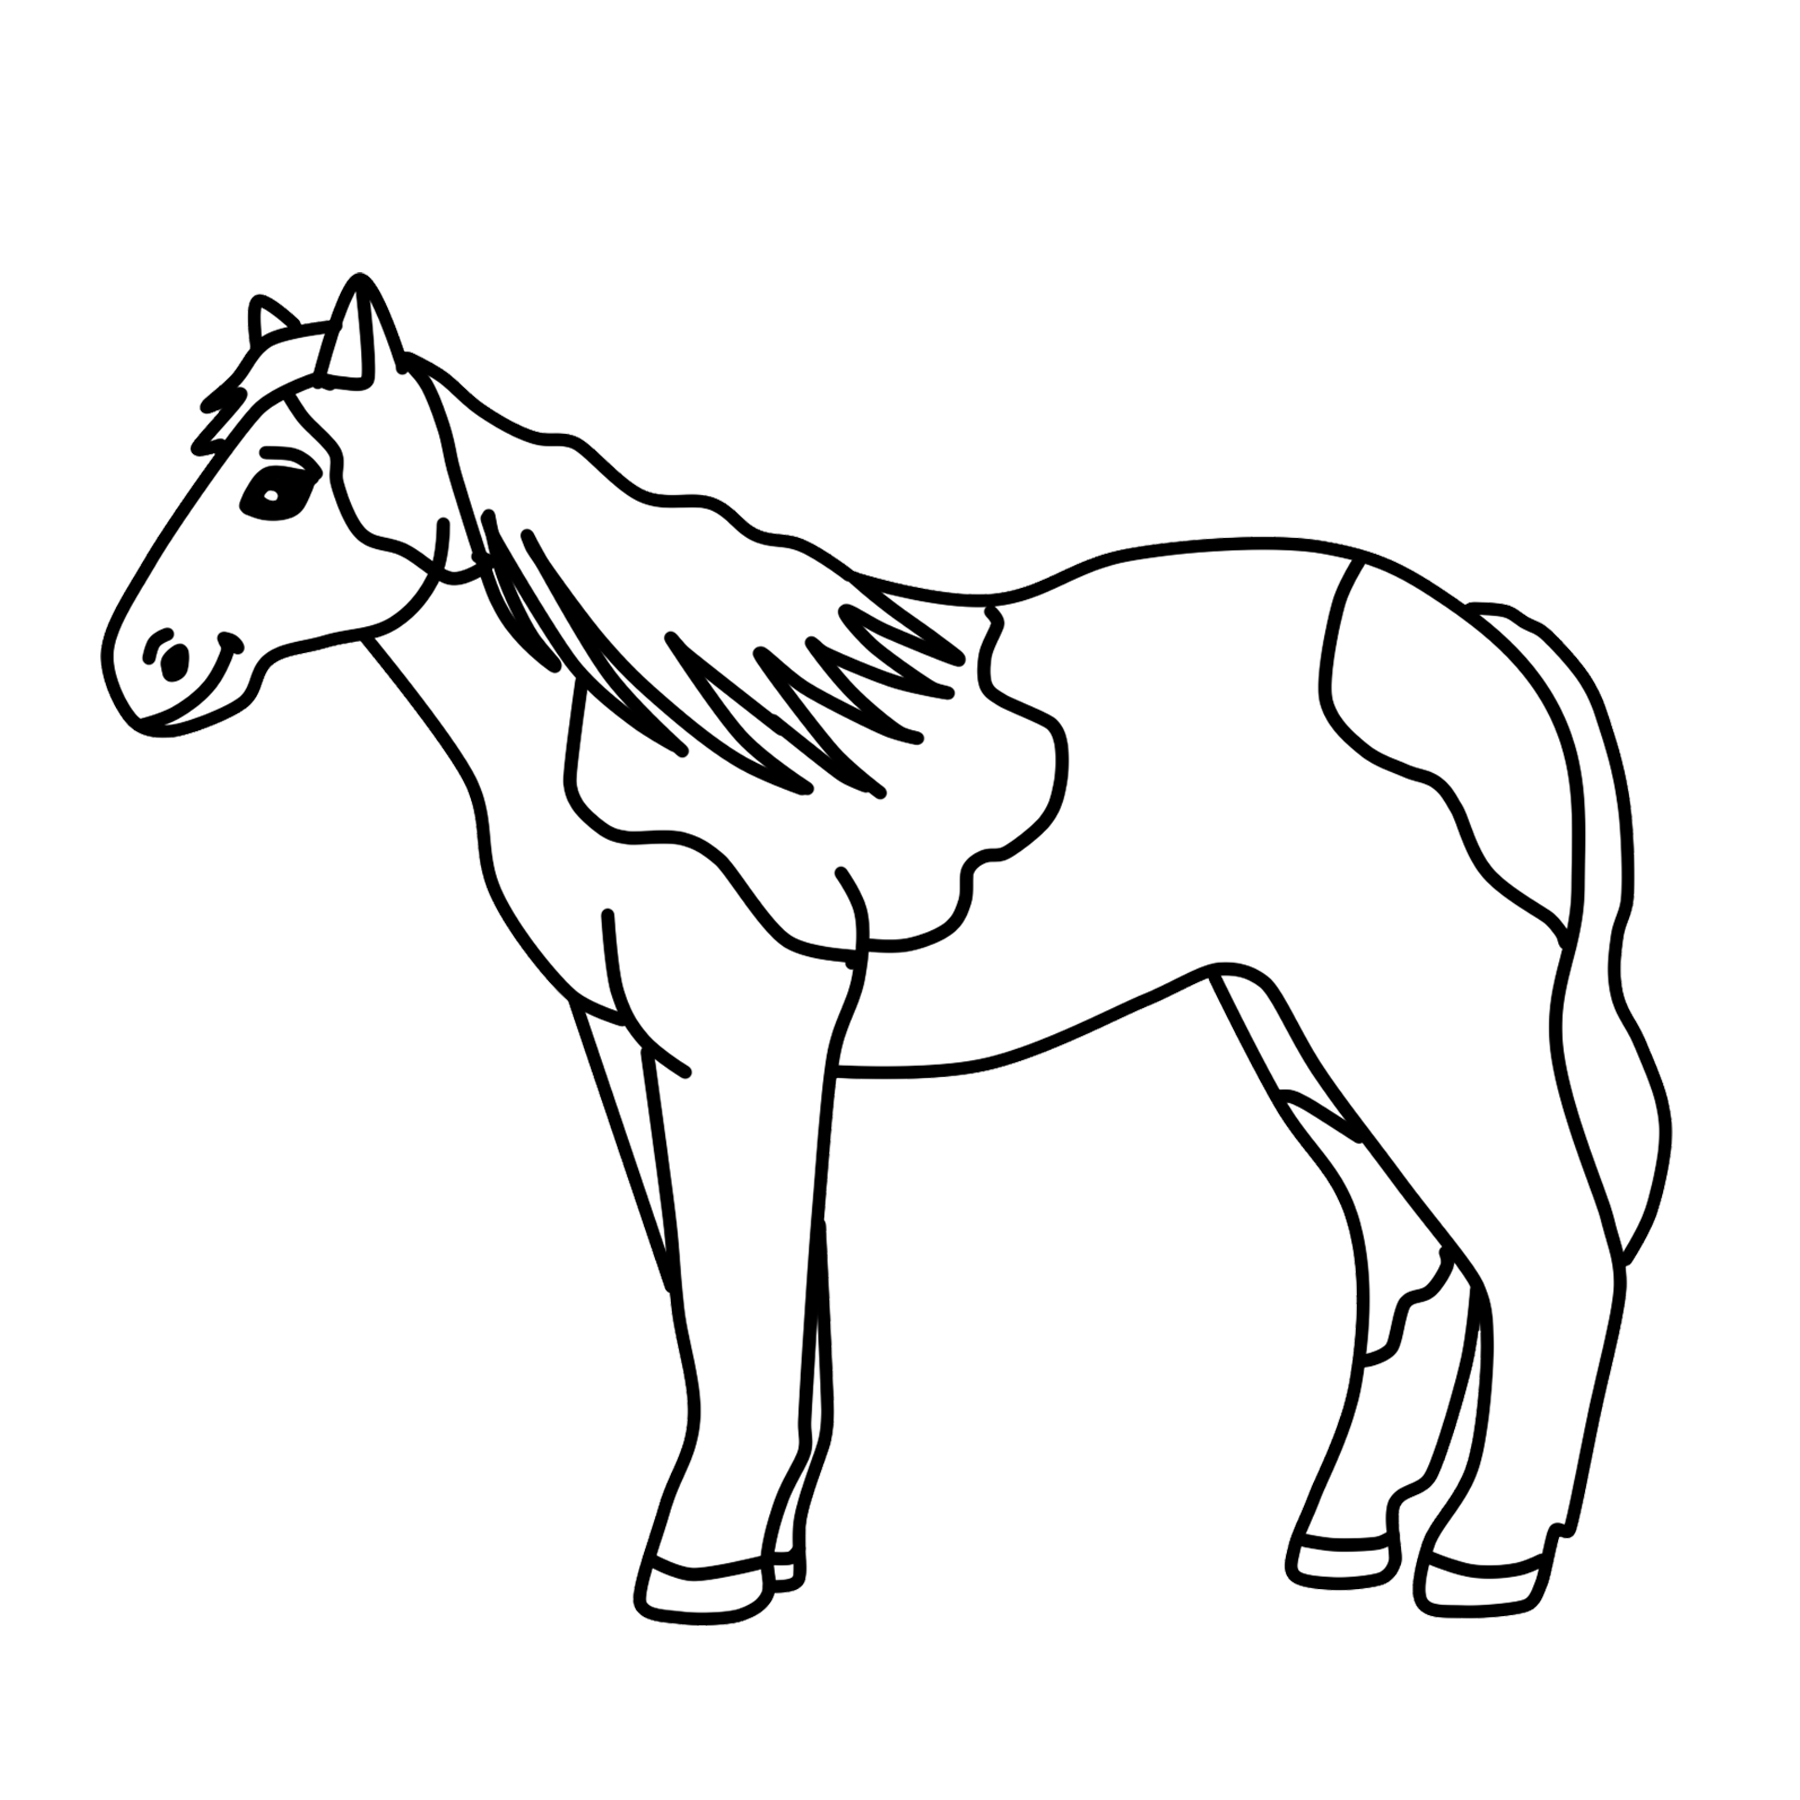 spotted horse clipart pony graphic free clipart by clipart 4 school rh clipart4school com running horse clipart black and white horse clip art black and white free